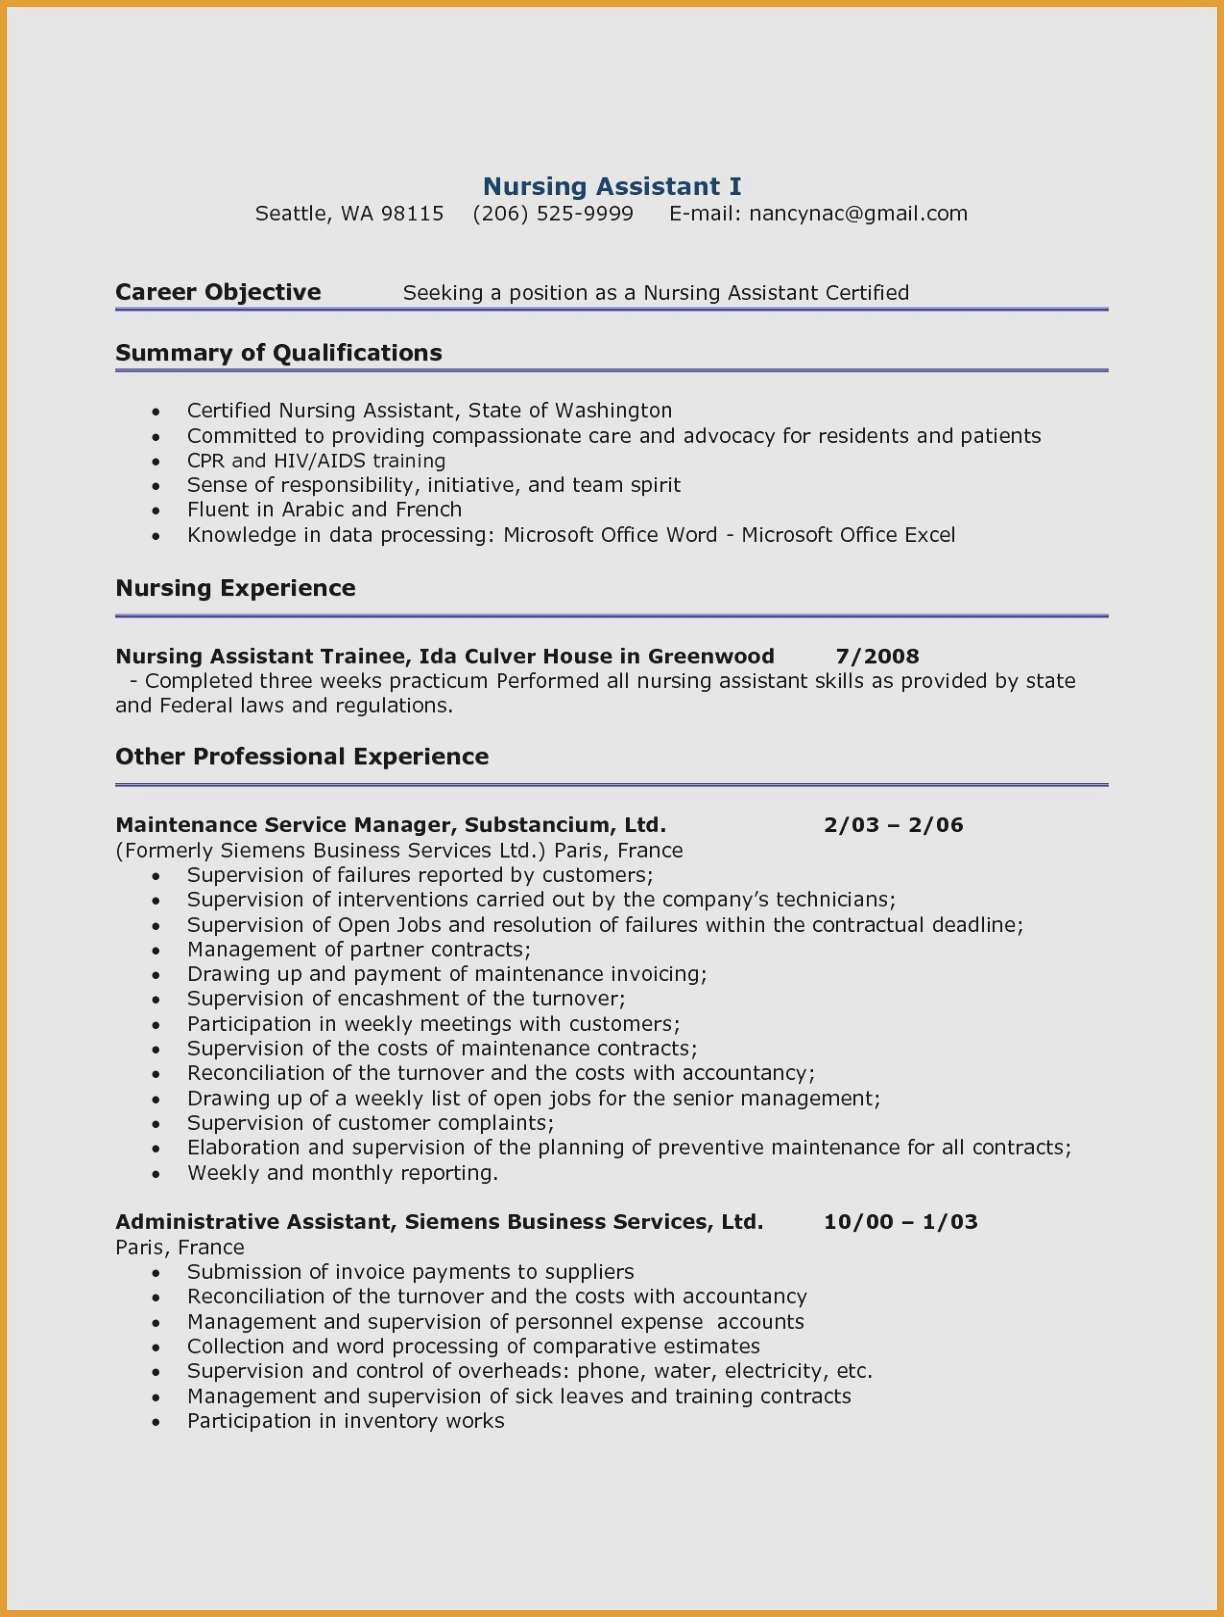 Microsoft Cover Letter Template Fresh Cover Letter Template Microsoft Word 2010 Collection